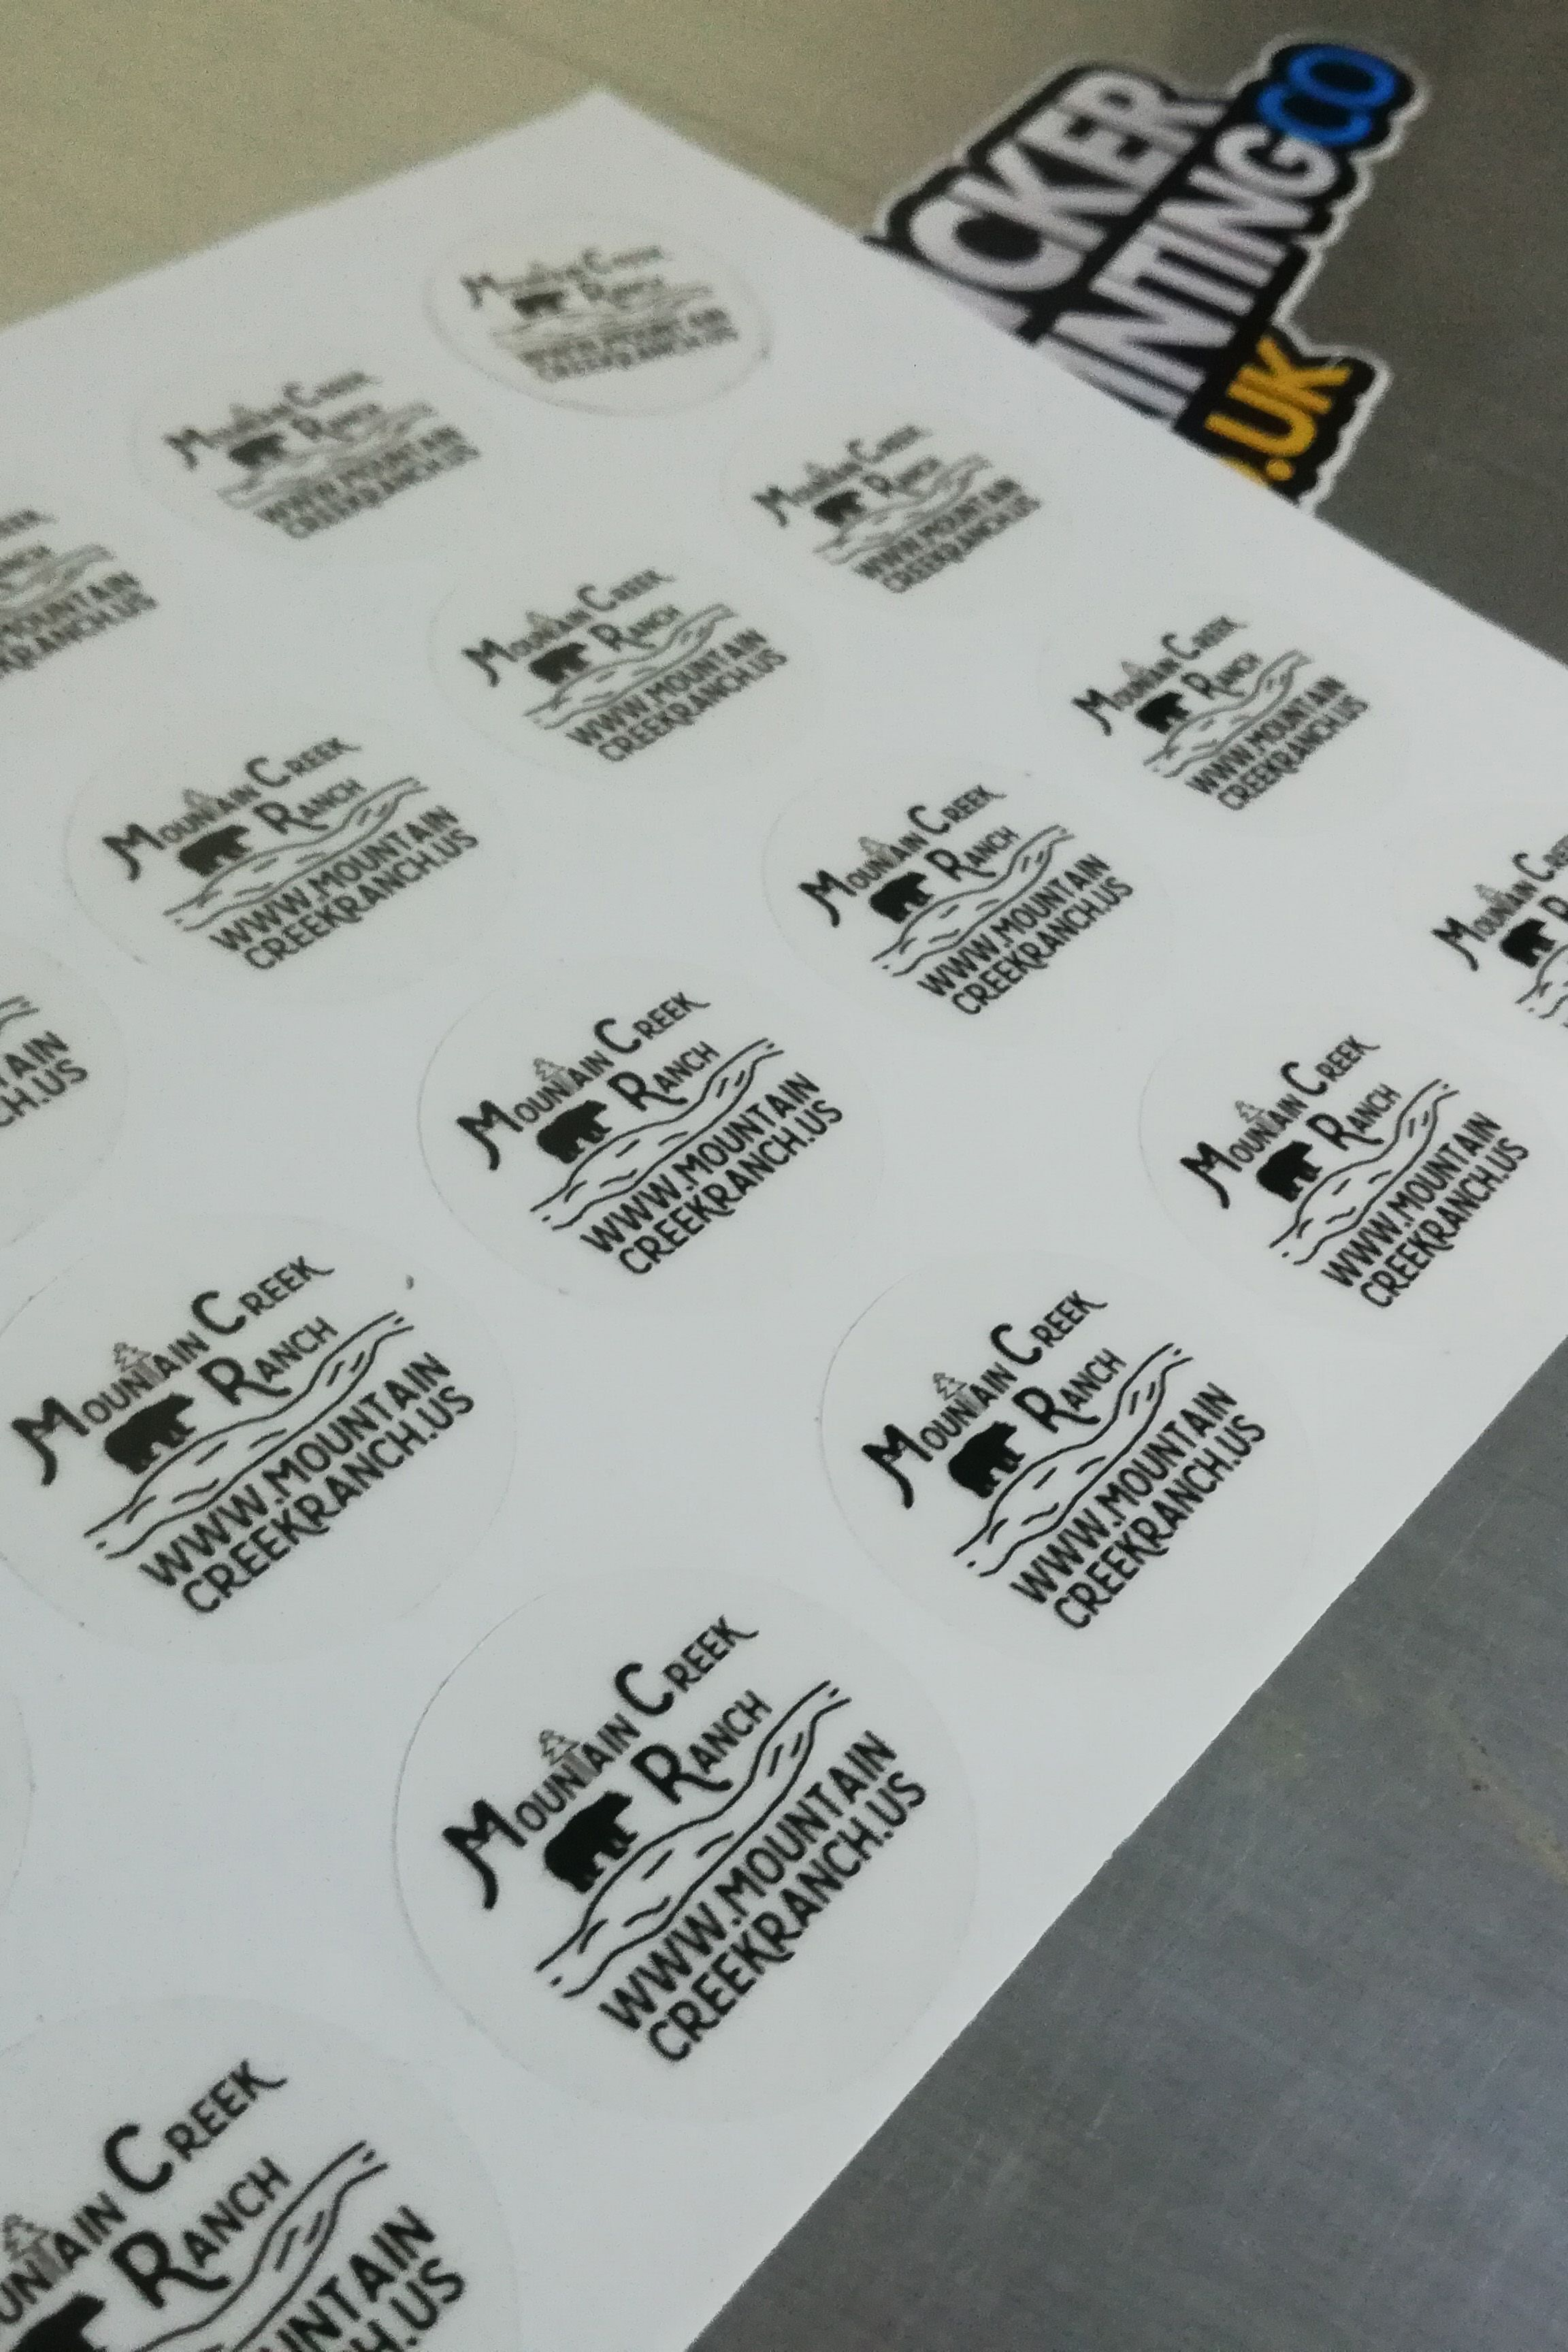 Make your own stickers online order transparent sticker printing in uk with cheap sticker printing company